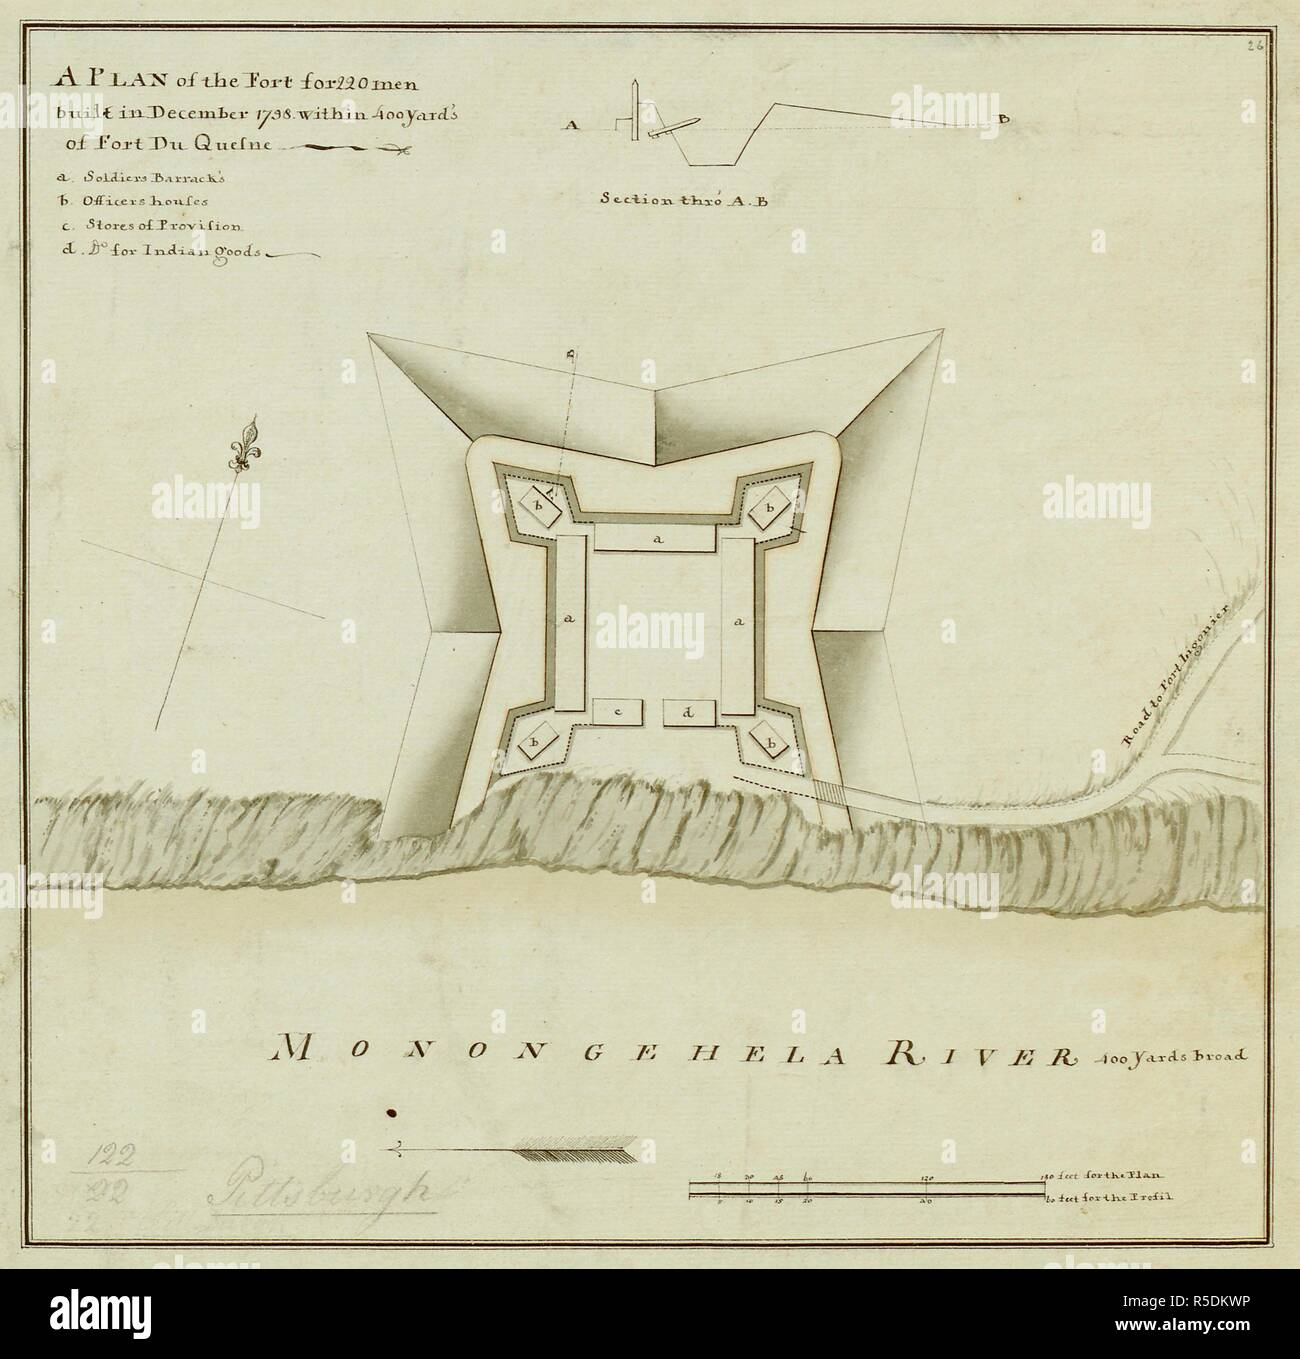 A plan of the fort for 220 men, built in December, 1758, within 400 yards of Fort du Quesne, Pennsylvania. A PLAN of the Fort for 220 men built in December 1758 within 400 Yard's of Fort du Quesne. [Fort Pitt?] : [producer not identified], about 1758. Source: Maps K.Top.122.22. Language: English. - Stock Image